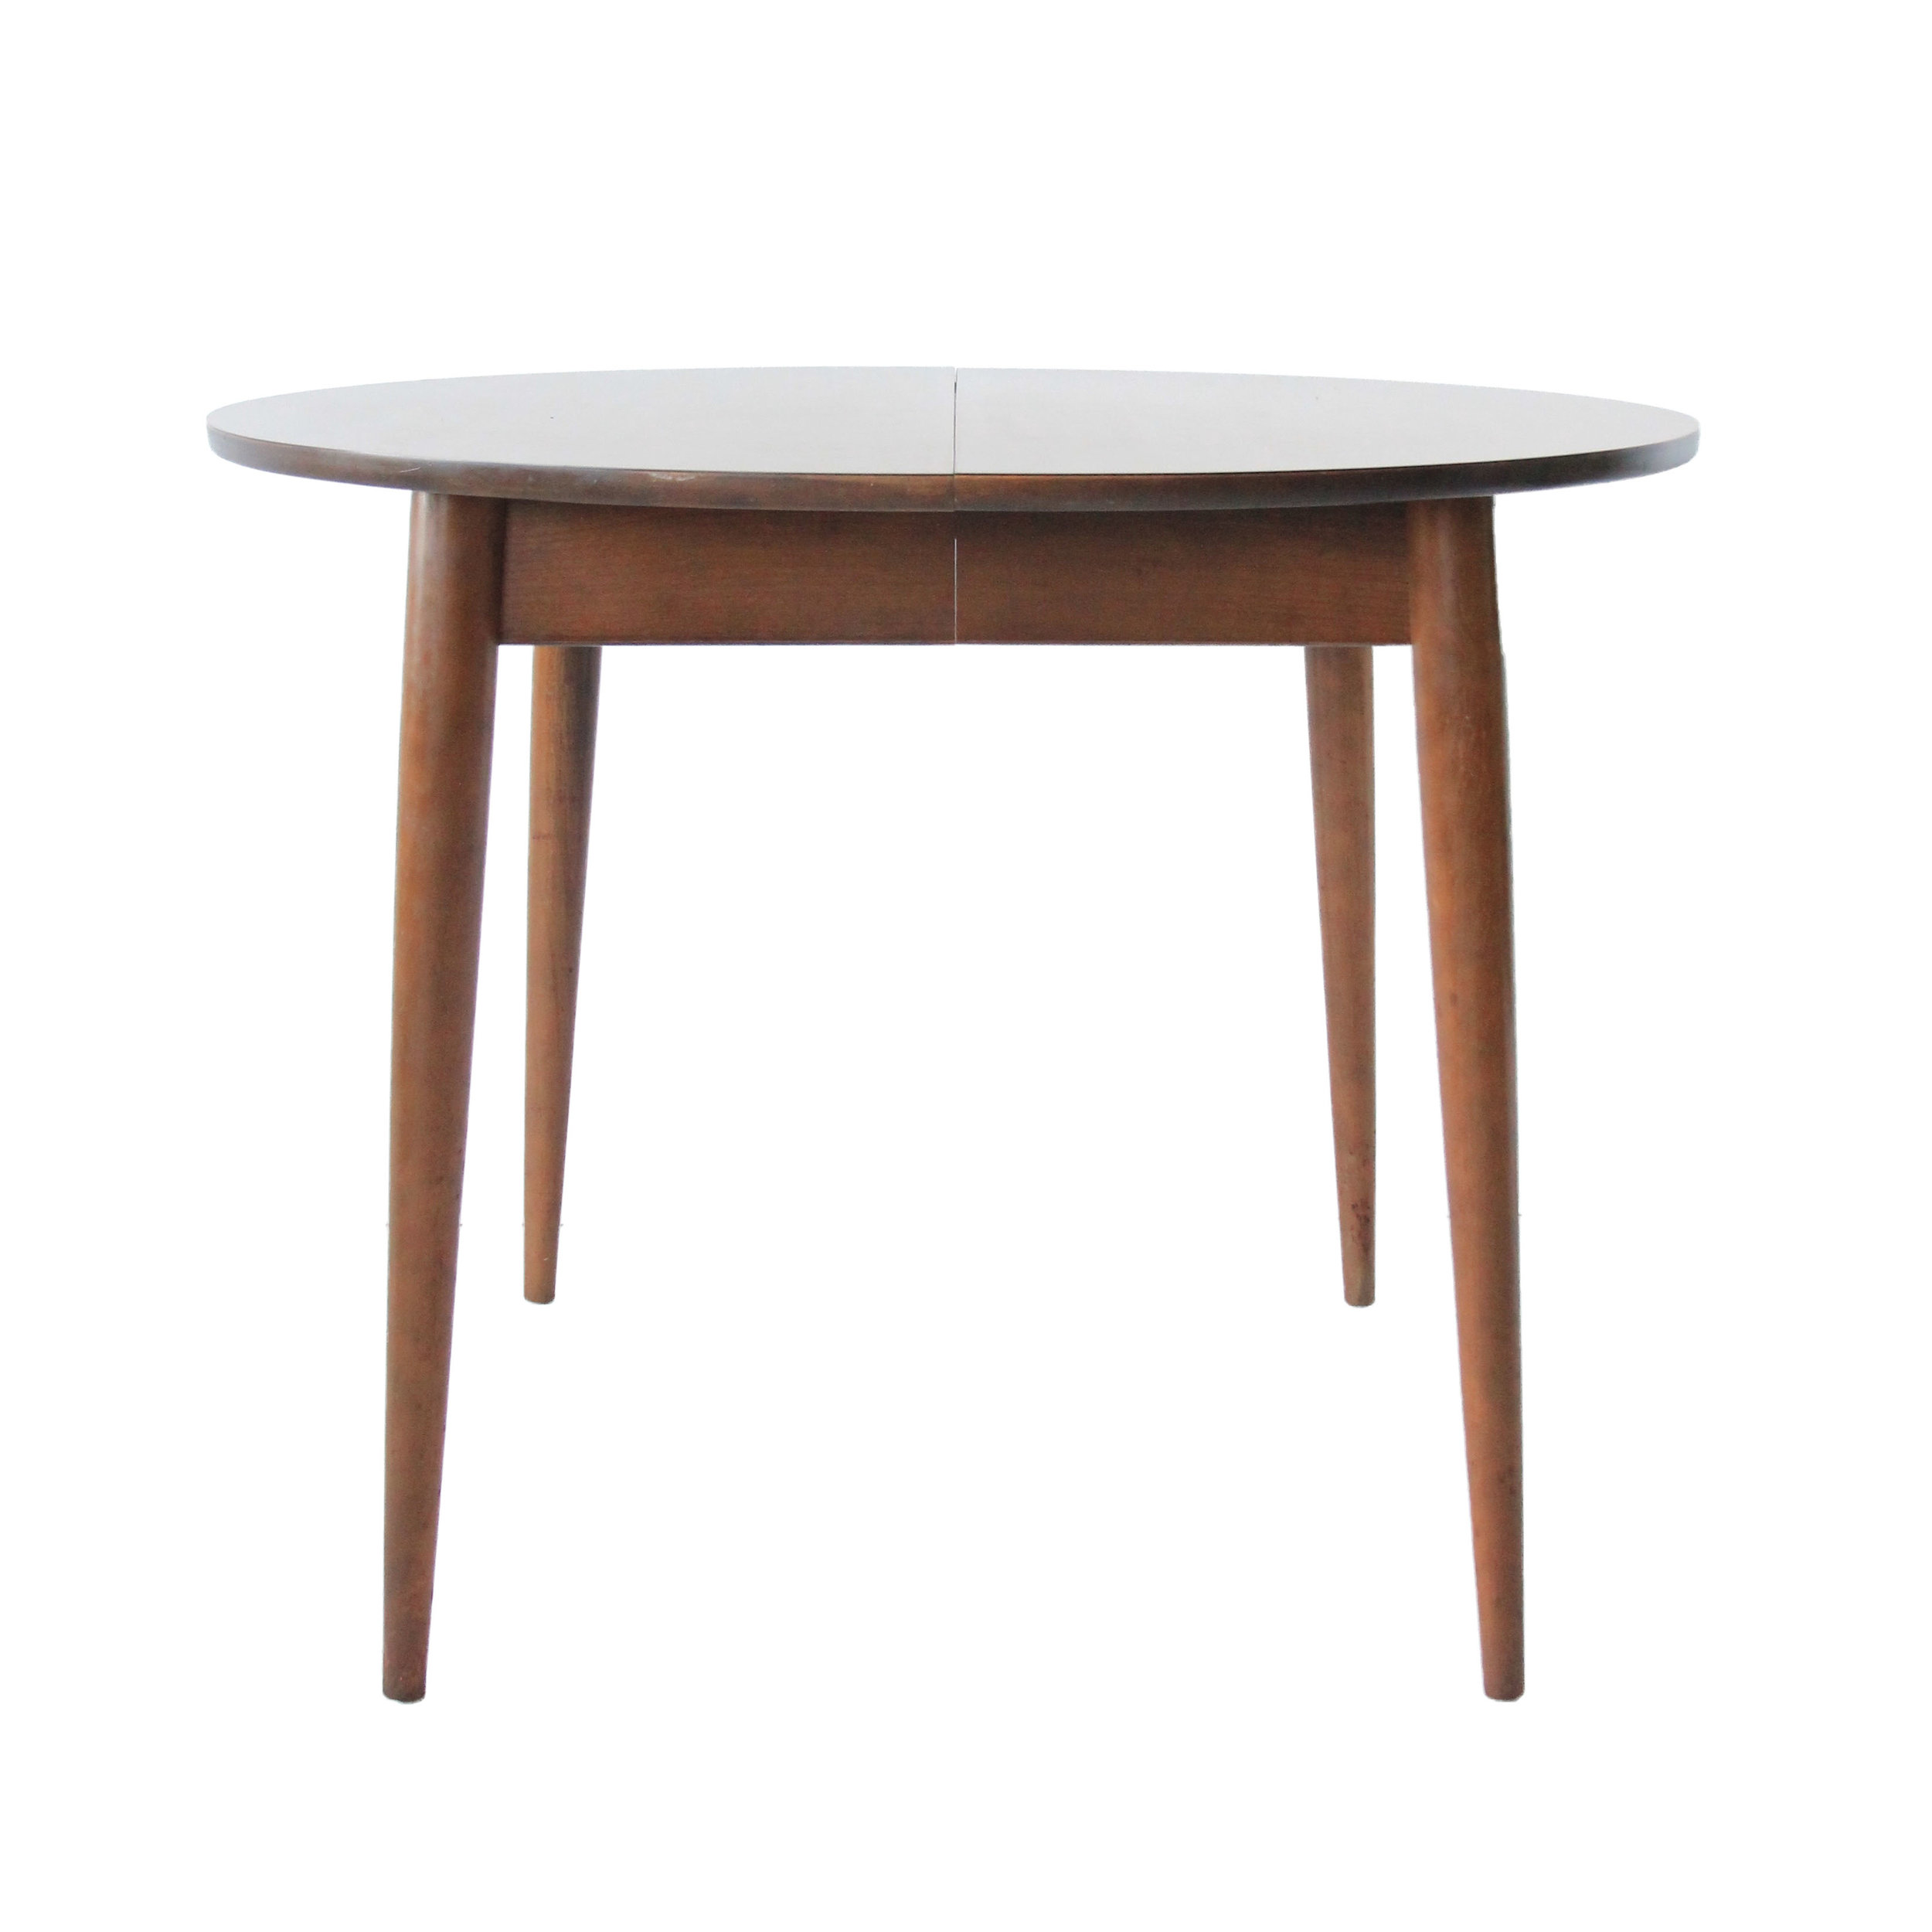 Vintage Mid Century Modern Round Dining Table